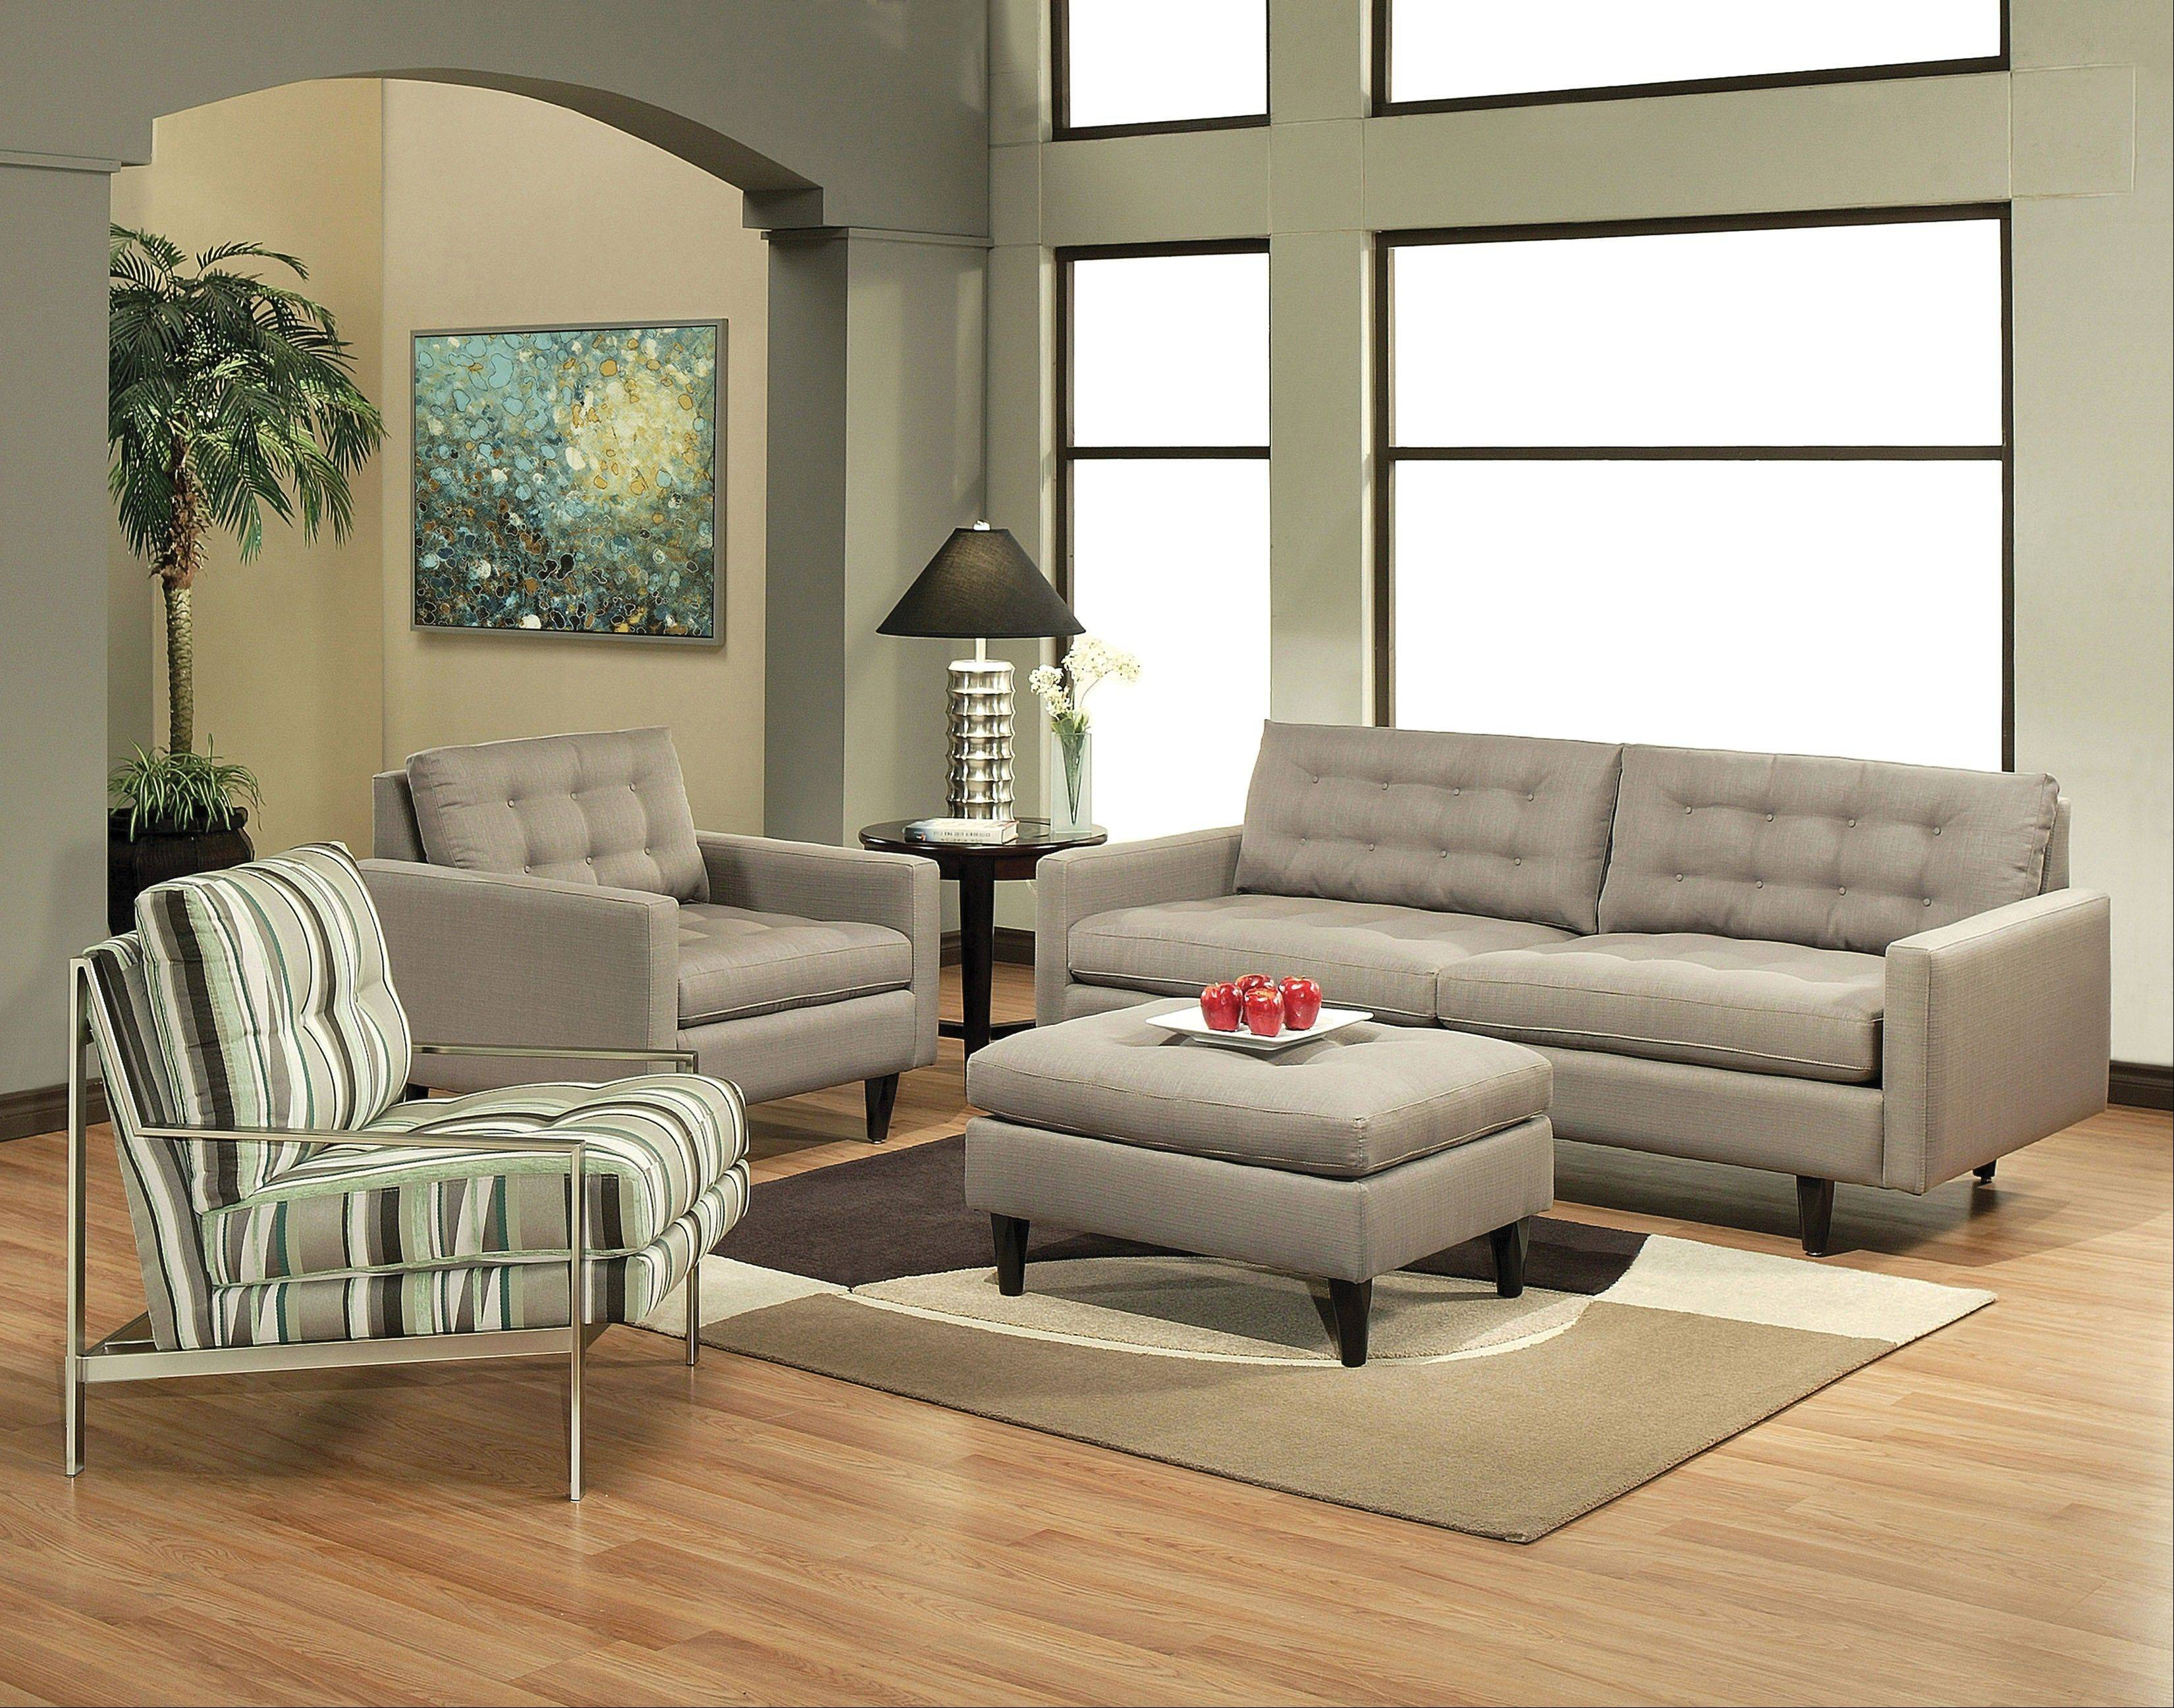 Consumers are choosing warm neutral colors — grays and taupes — for sectionals, couches and chairs.